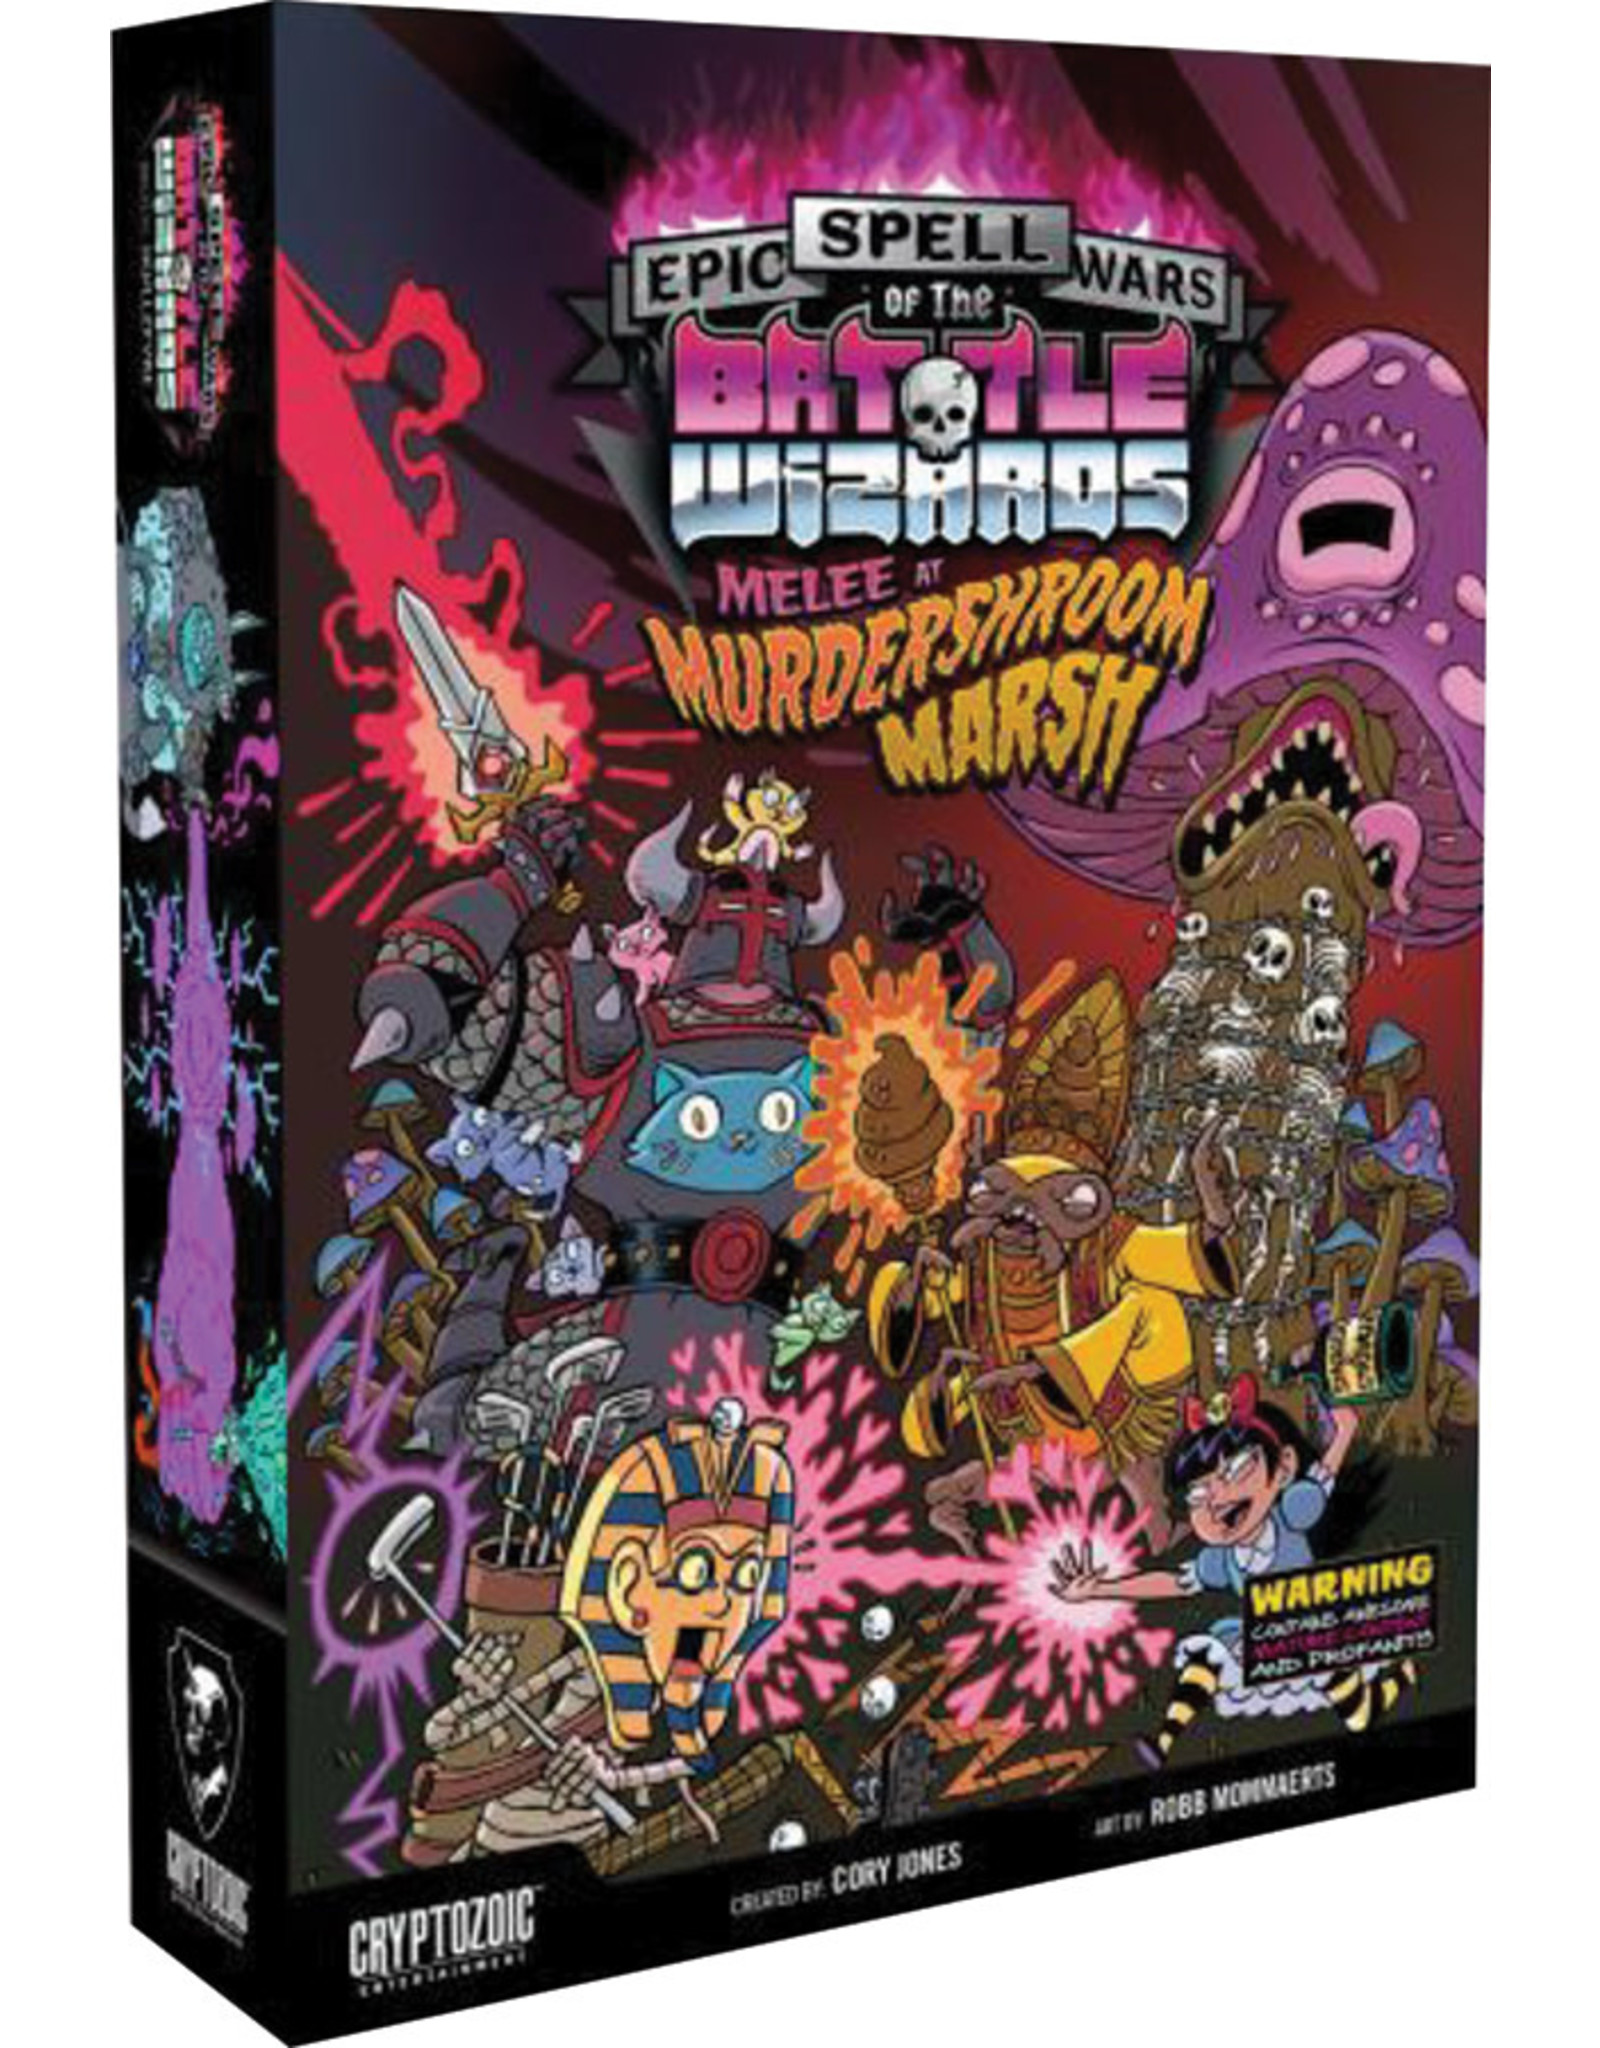 Cryptozoic Entertainment Epic Spell Wars of the Battle Wizards: 3 - Melee at Murdershroom Marsh (stand alone or expansion)